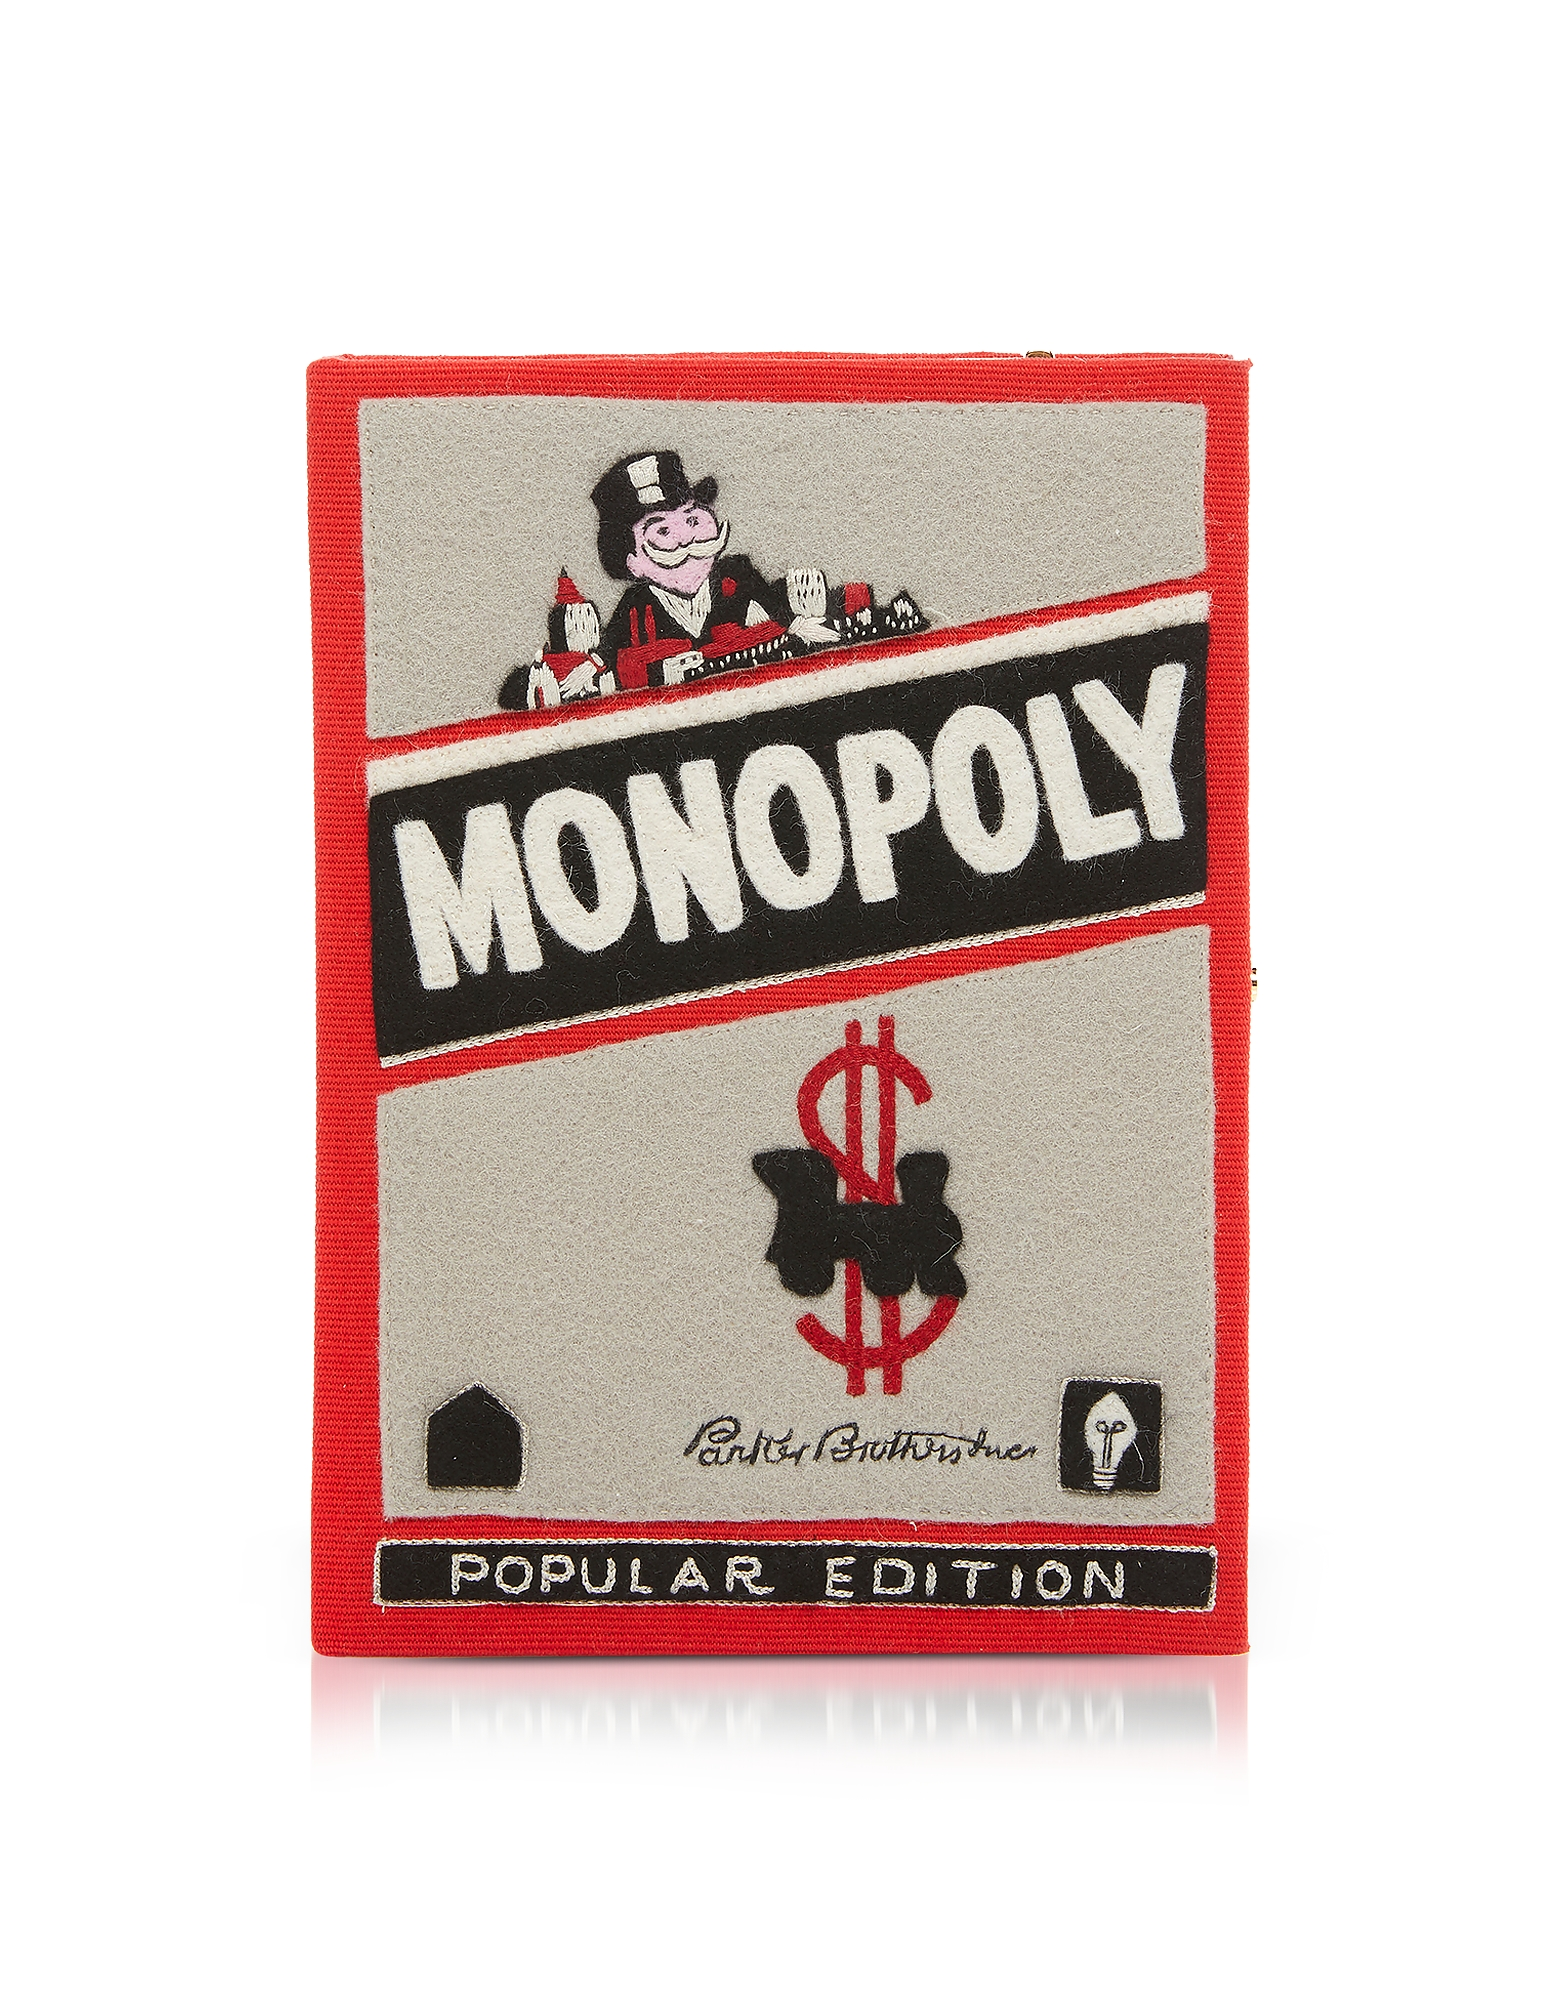 Cotton and Wool Monopoly Book Clutch